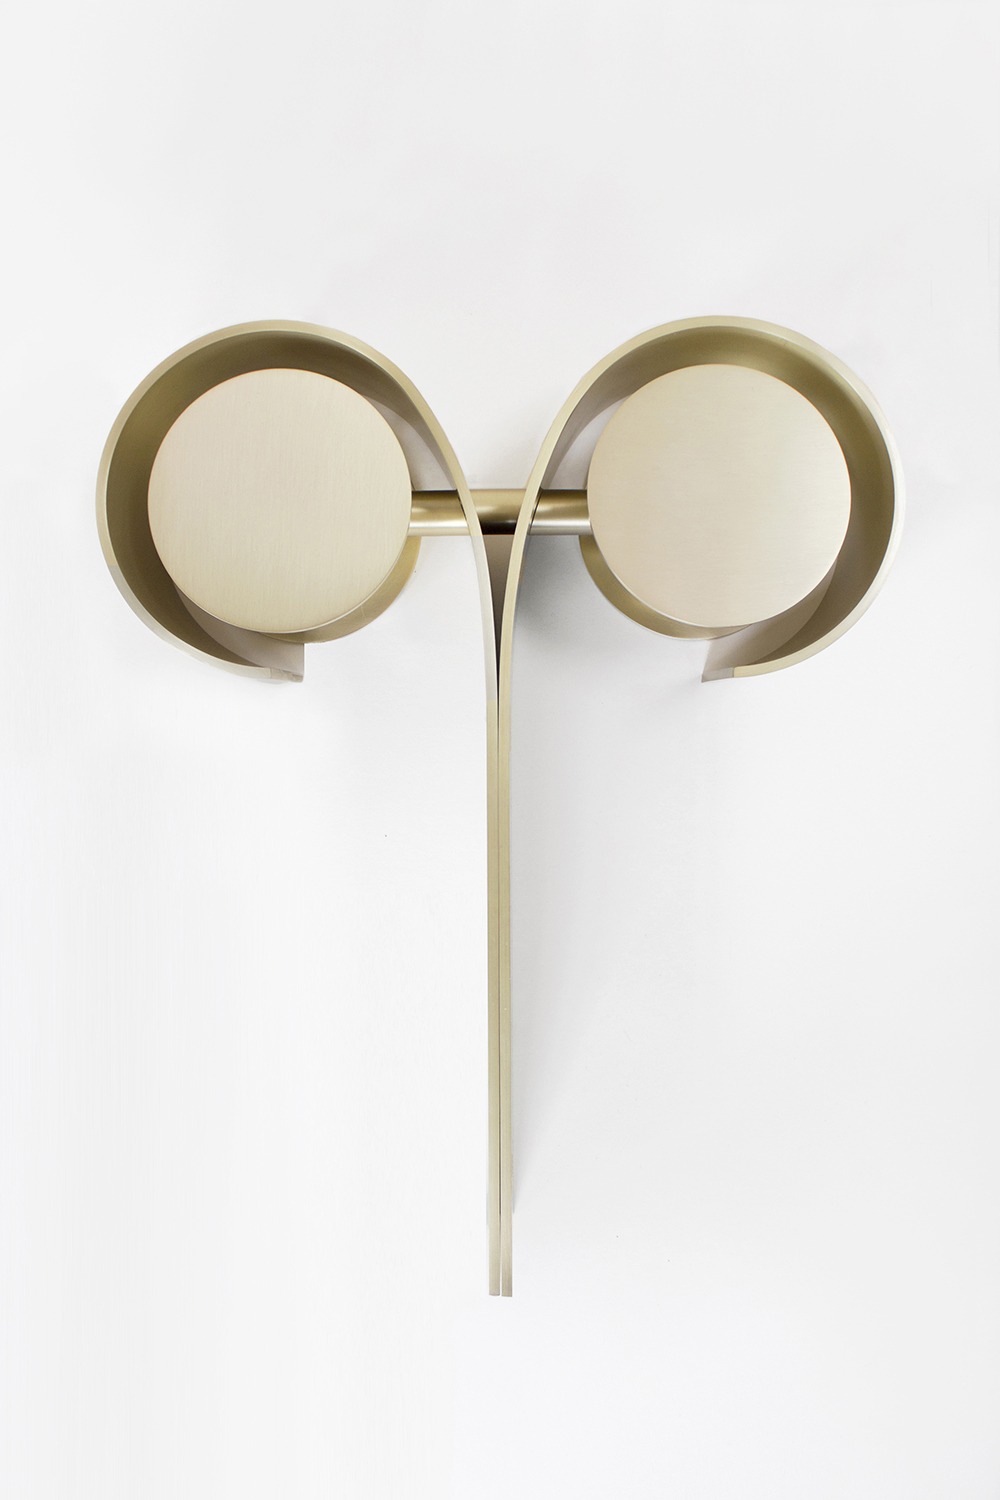 KHNUM SCONCE, 2015 BRUSHED BRASS  PDF  -  INQUIRE  +  MORE